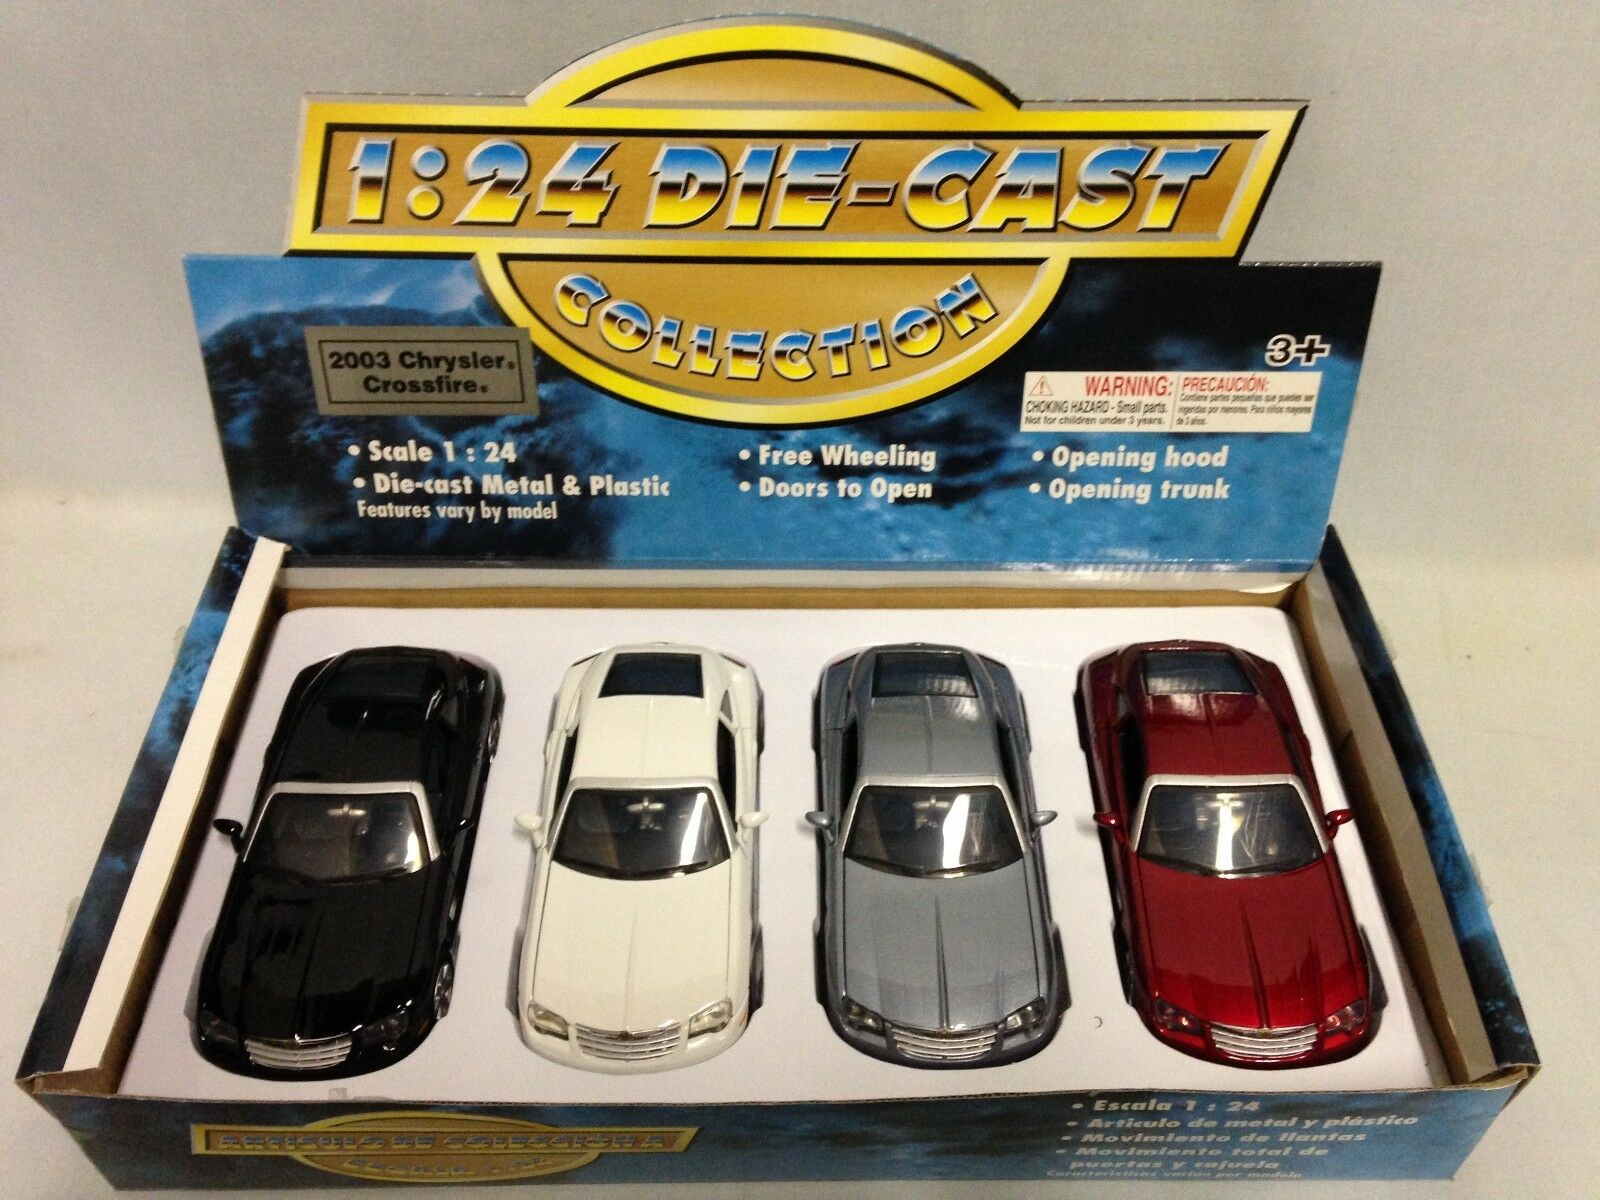 2003 Chrysler Crossfire 4 Pcs Set Collectibles 7  Diecast 1 24 MotorMax Toy Mix